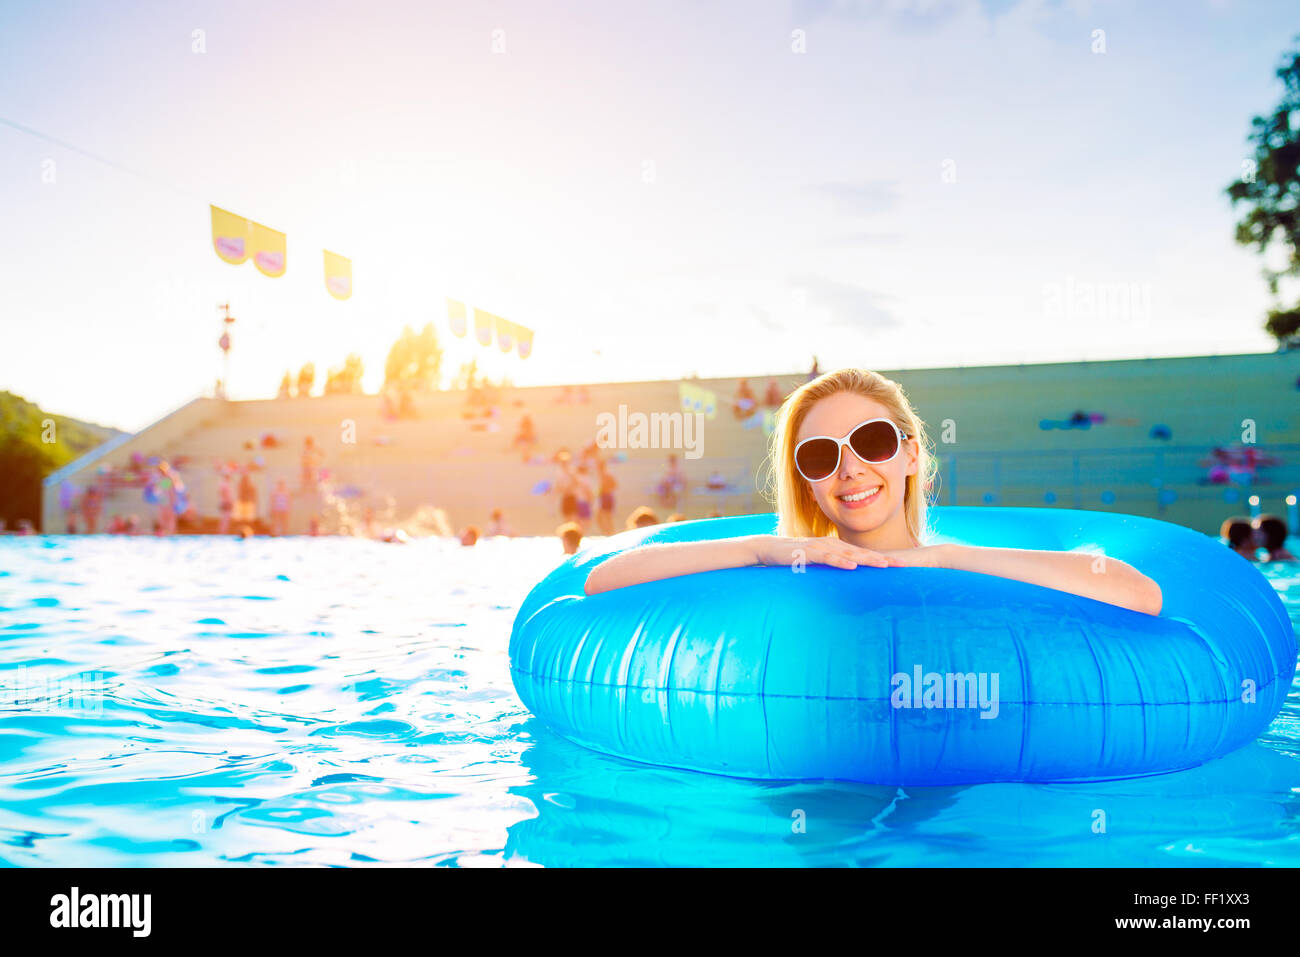 Inflatable Bathing Ring Stock Photos & Inflatable Bathing Ring Stock ...